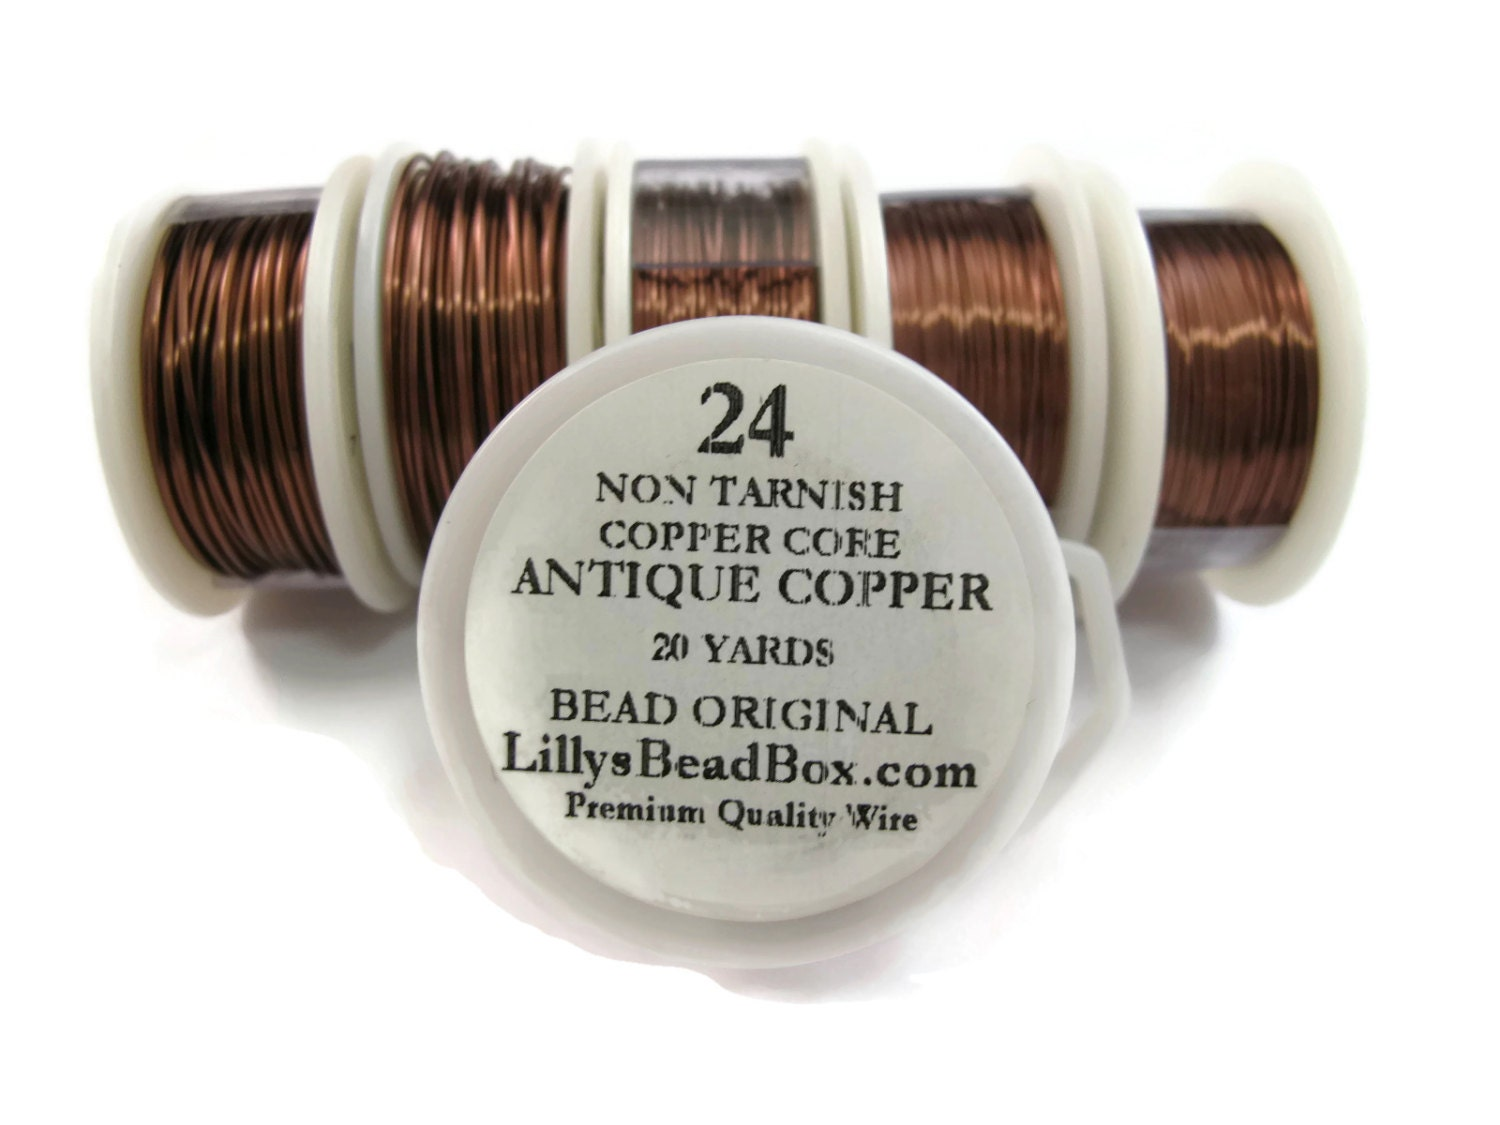 Antique Copper Wire - 24 Gauge Wire Wrapping Jewelry Supplies, Wire ...